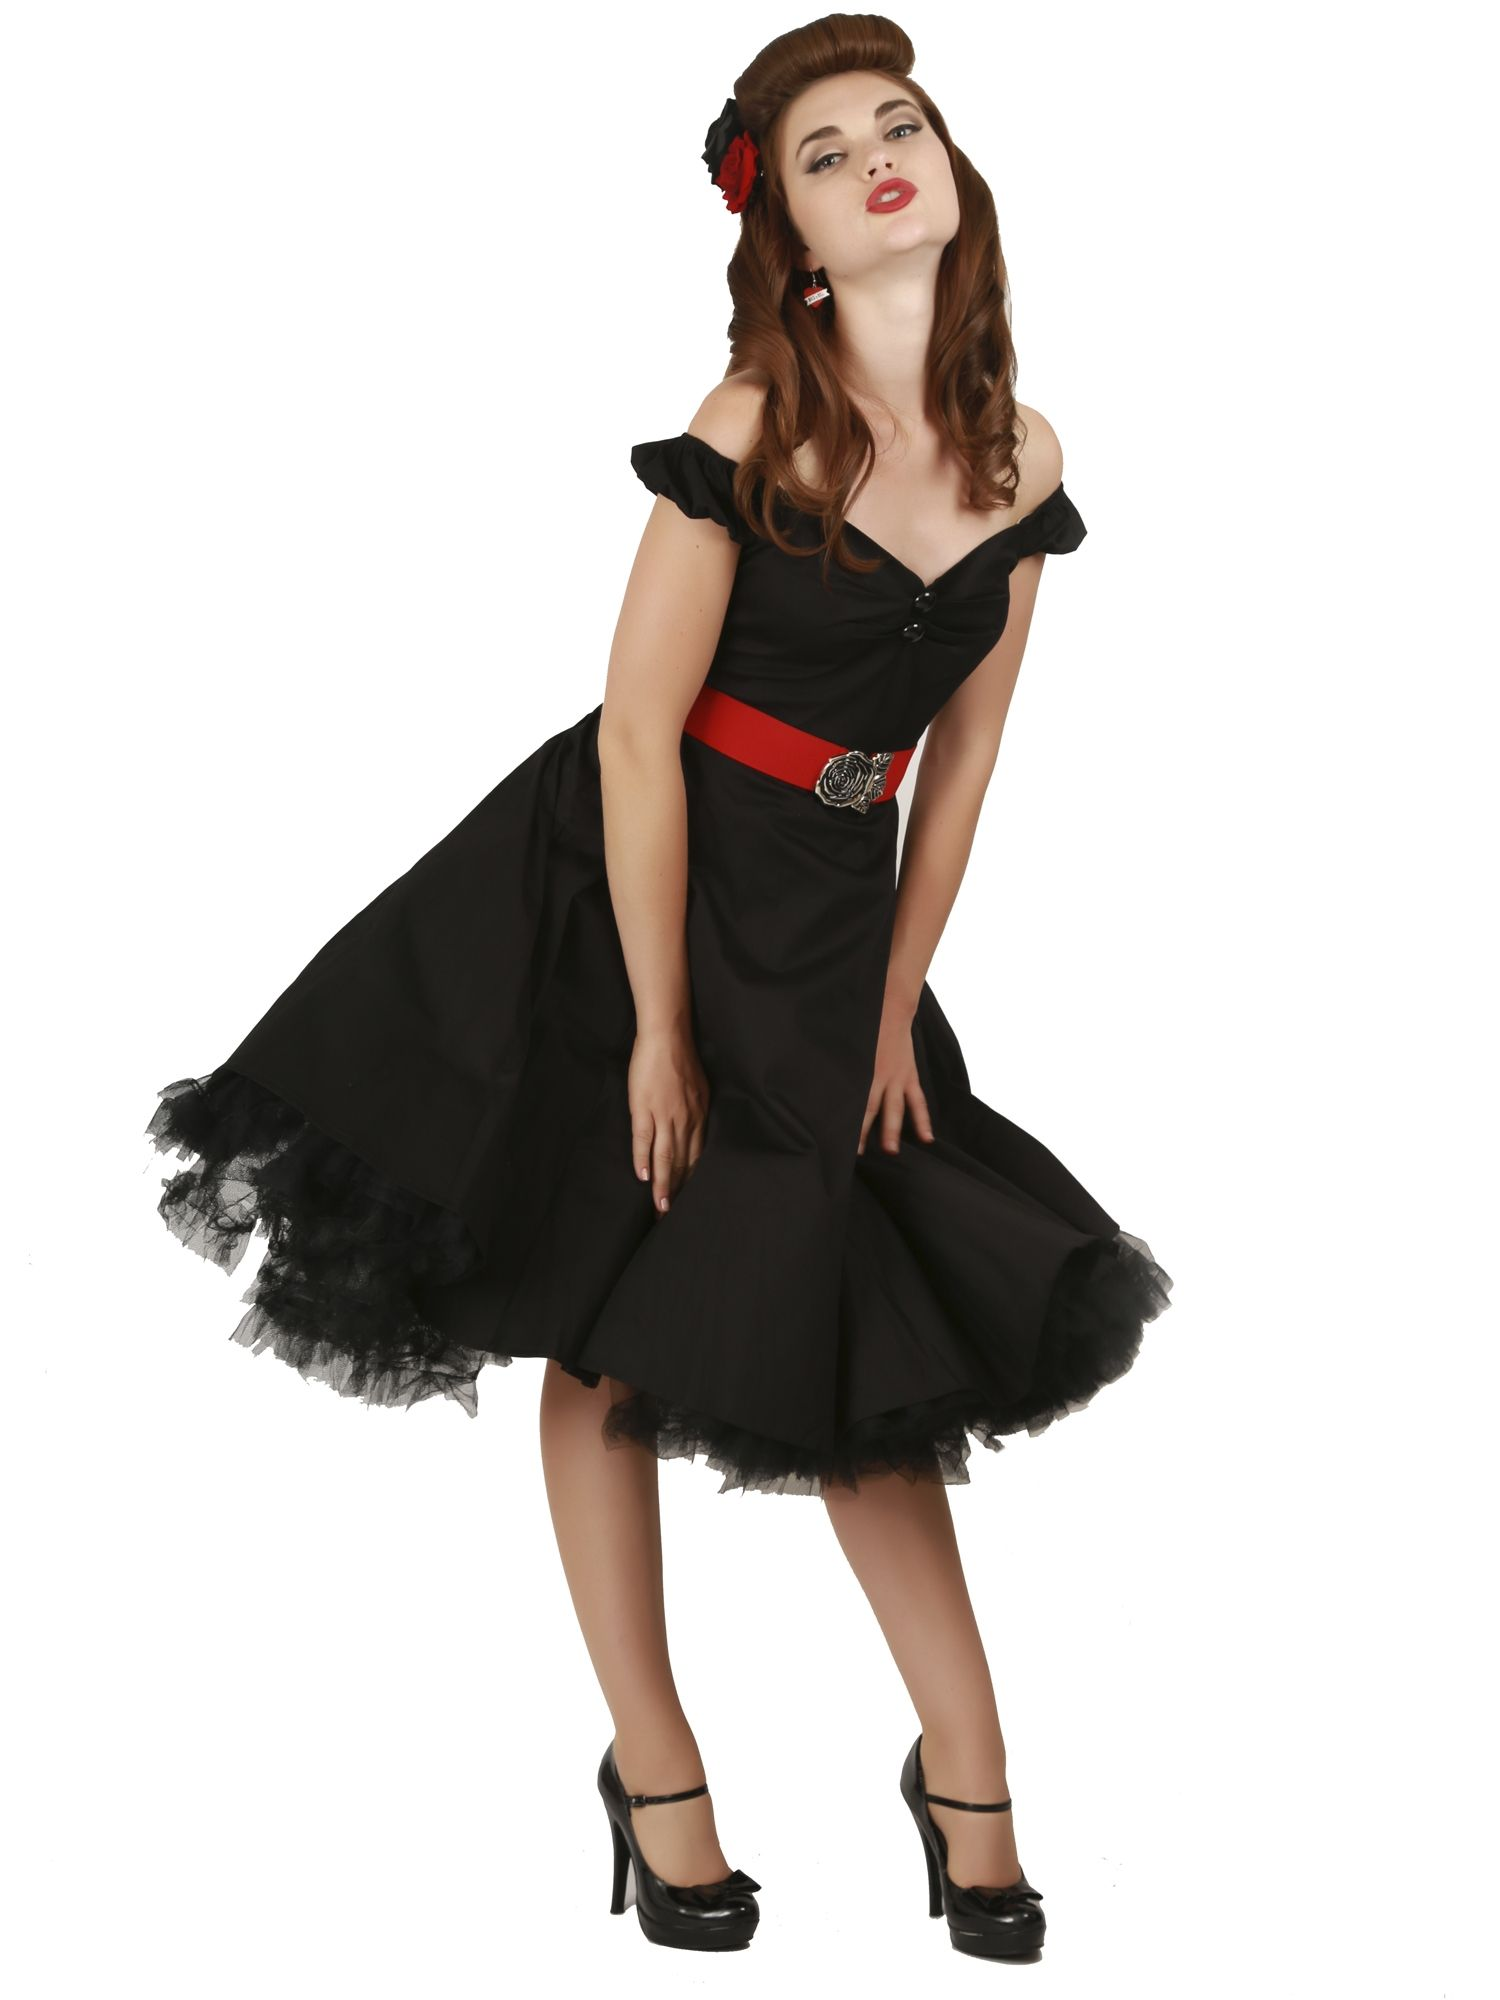 Dolores doll classic cotton black swing dress with red rose belt